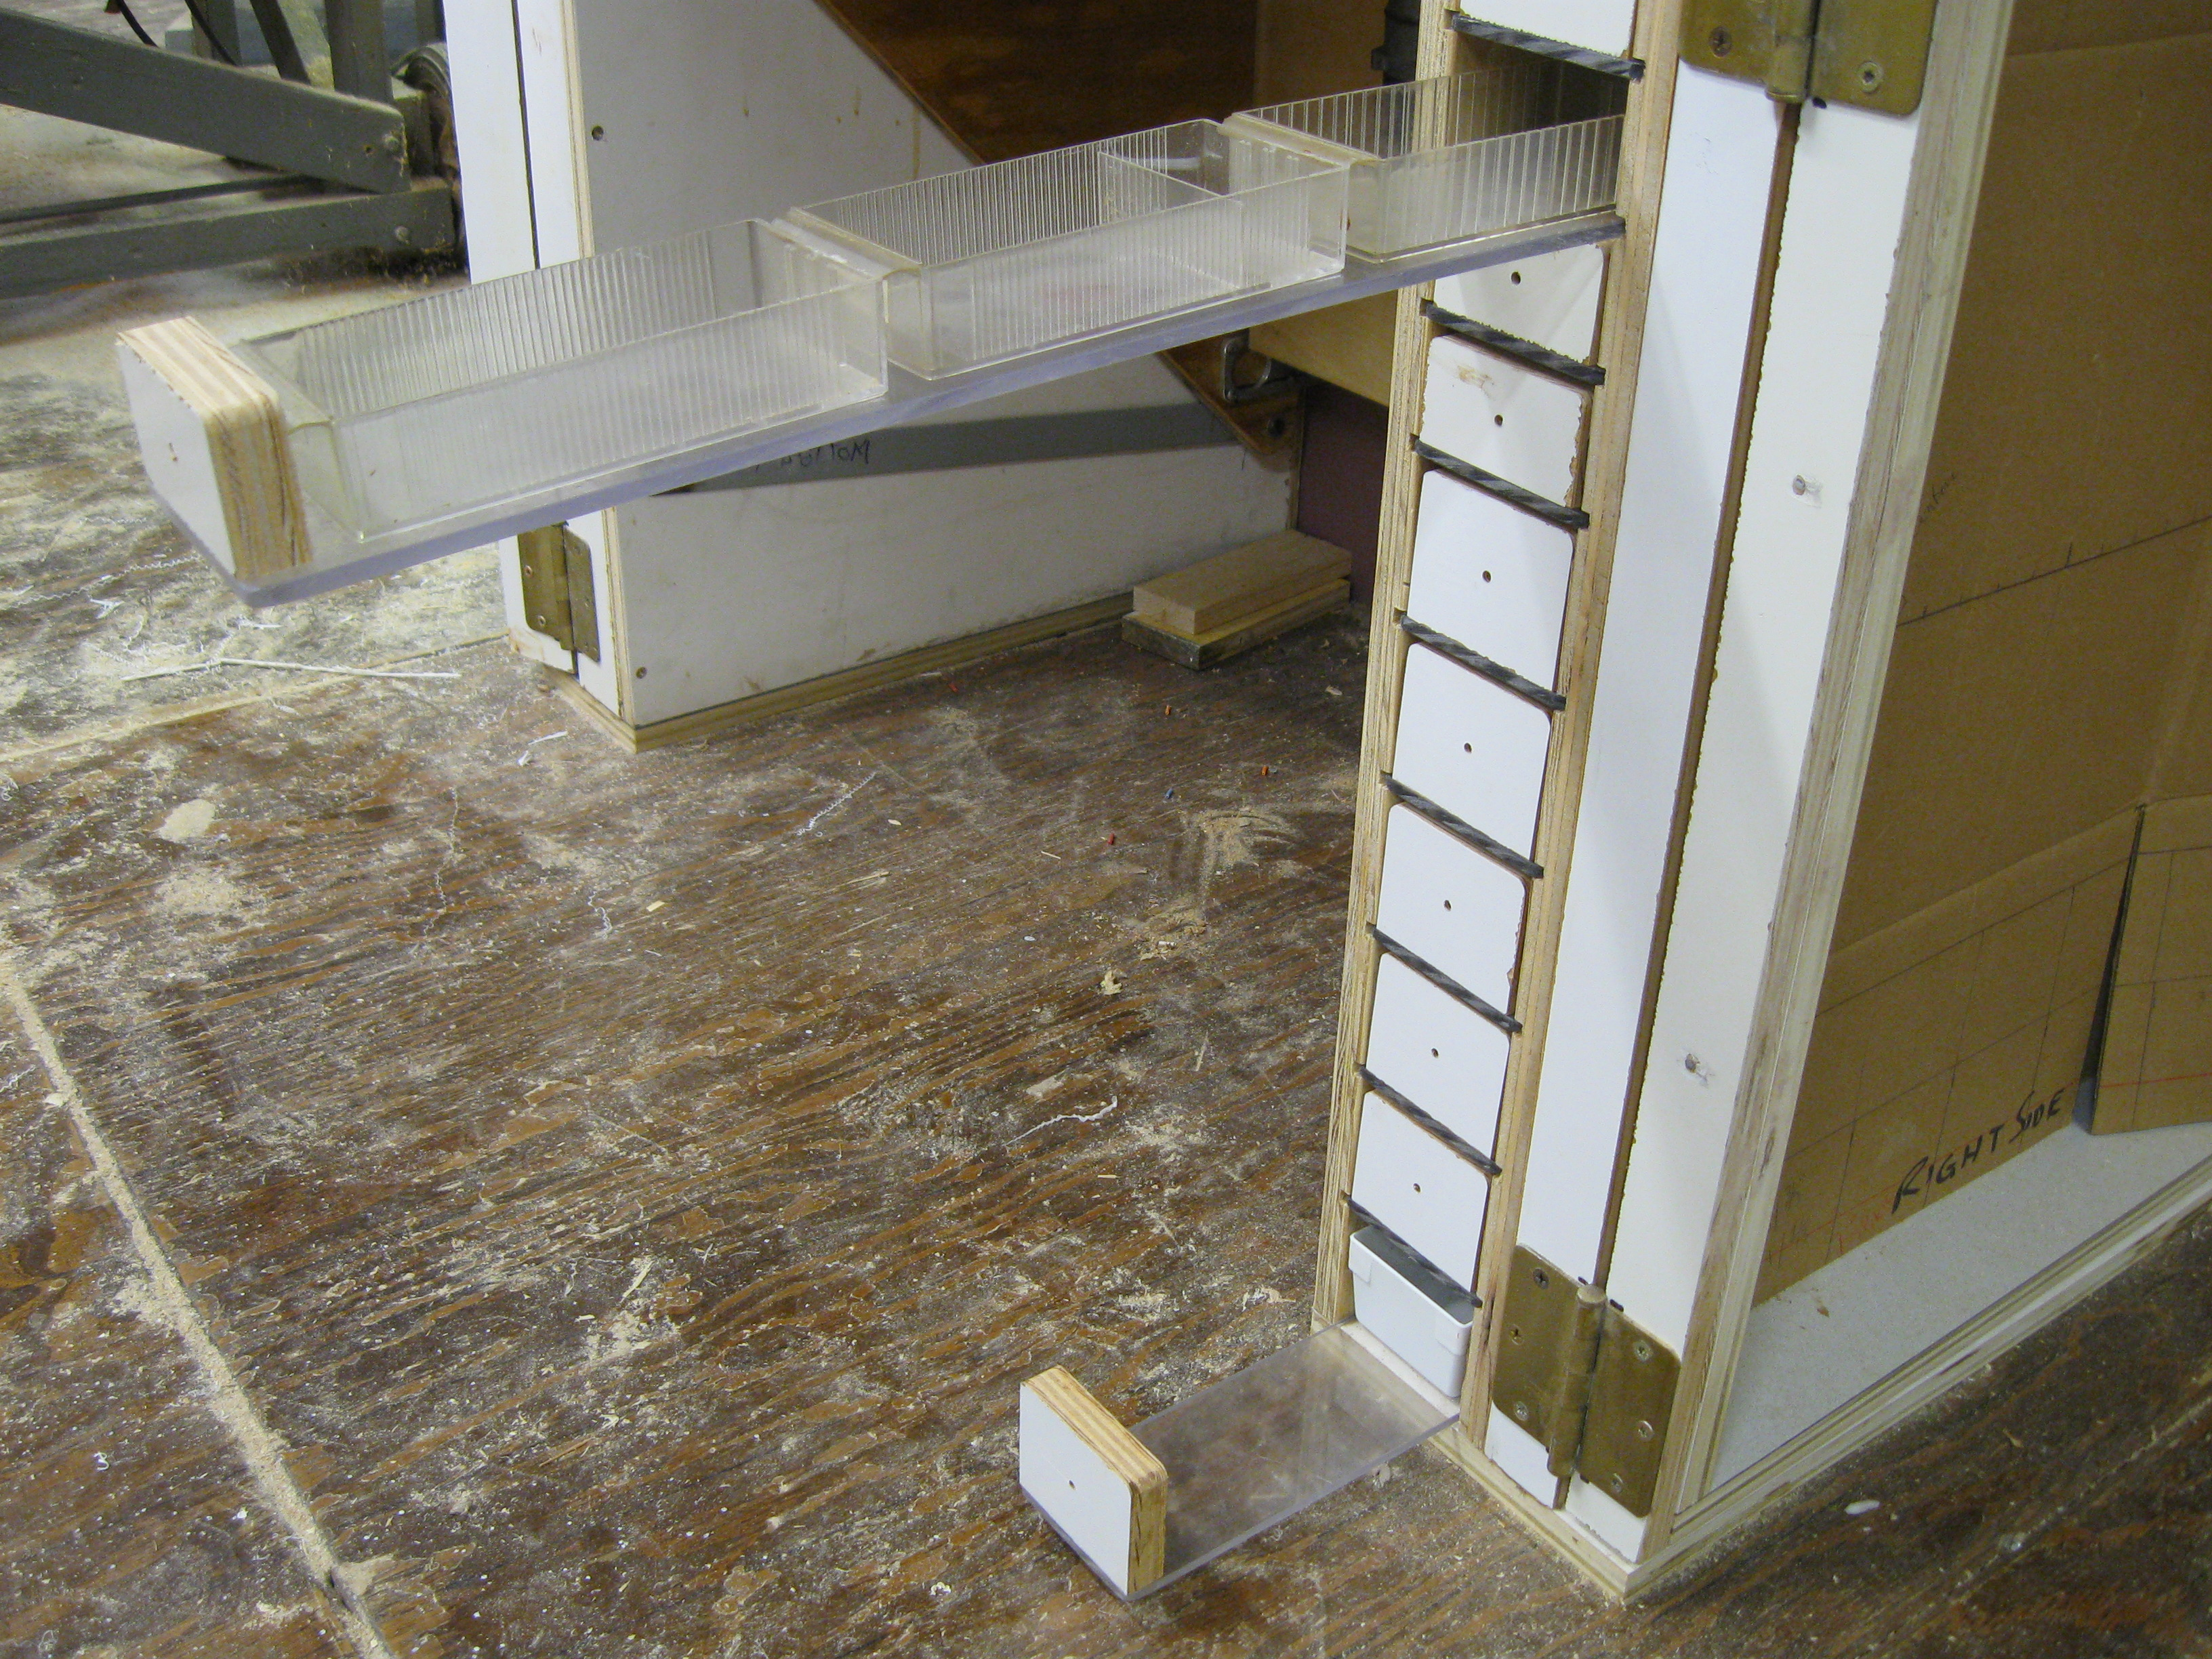 Picture of Plexiglas Based Drawers. (1)